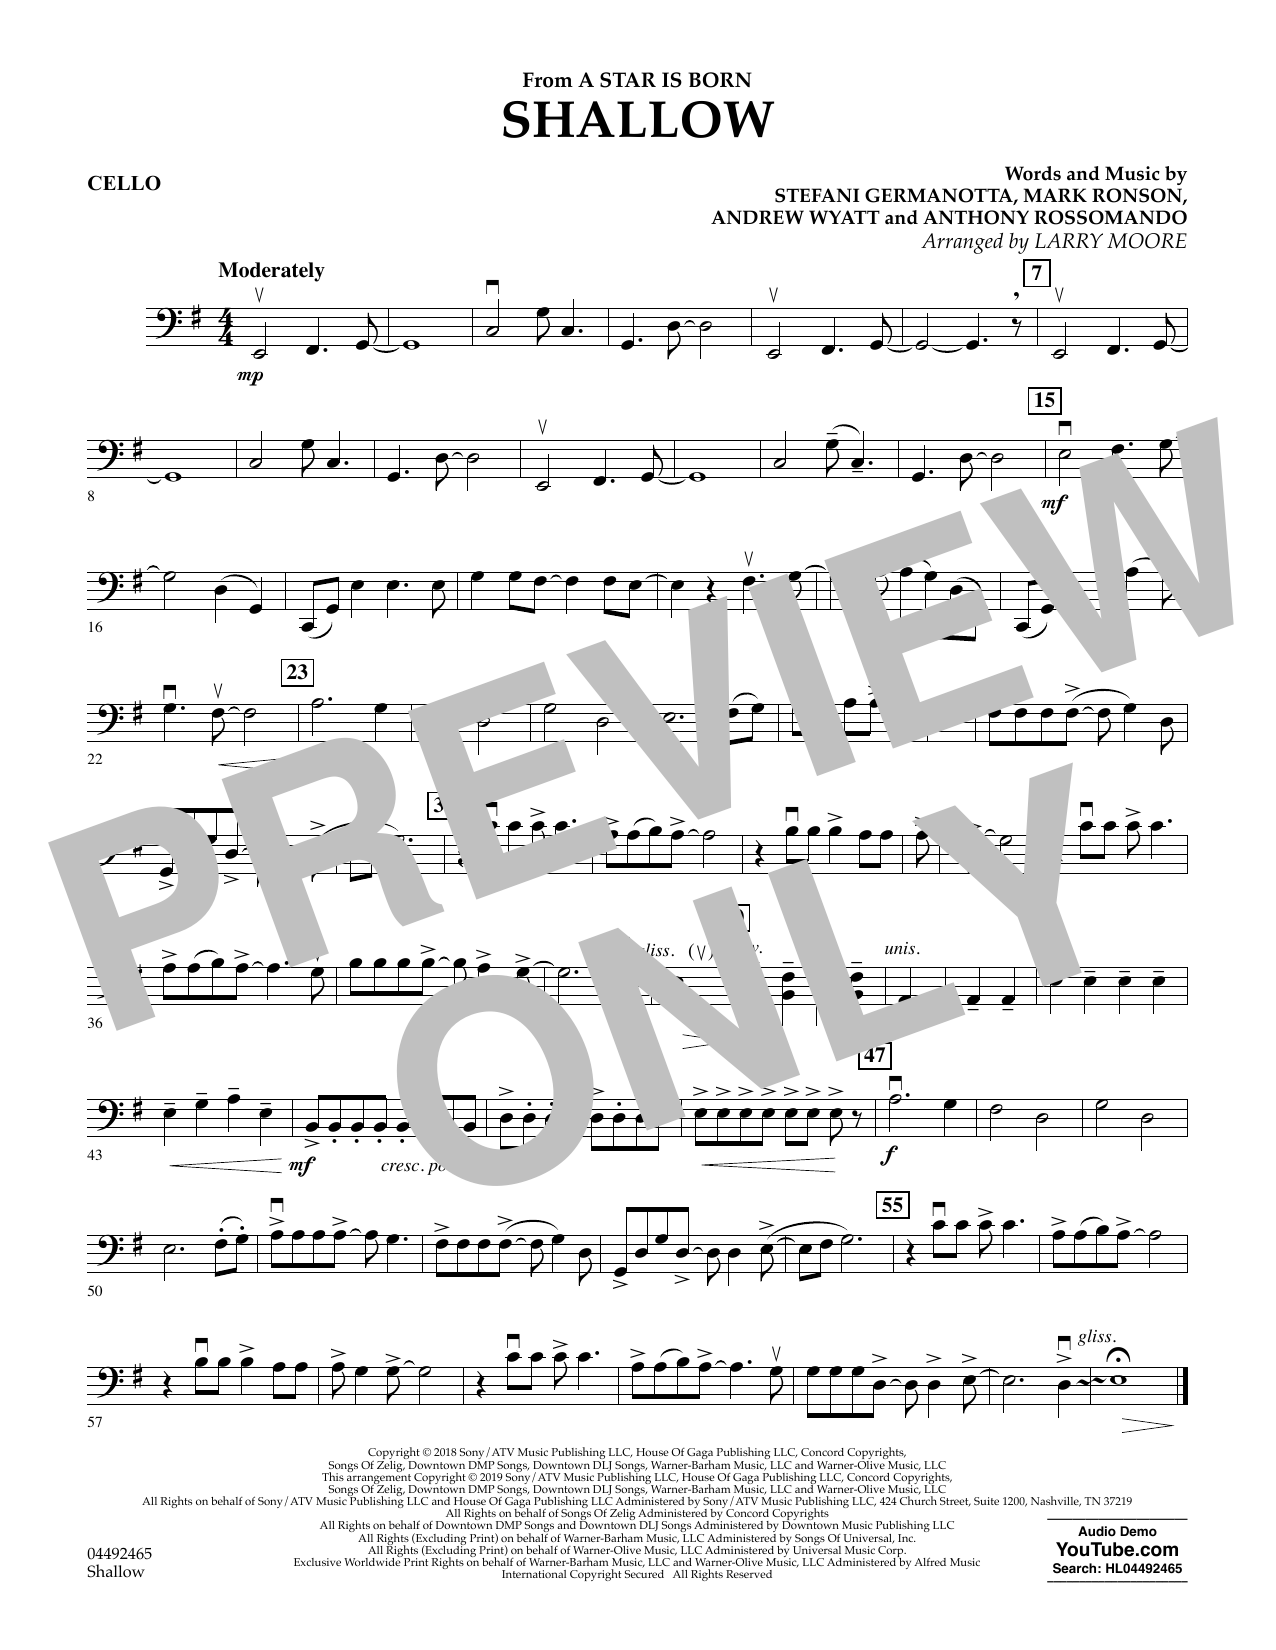 Lady Gaga & Bradley Cooper Shallow (from A Star Is Born) (arr. Larry Moore) - Cello sheet music notes and chords